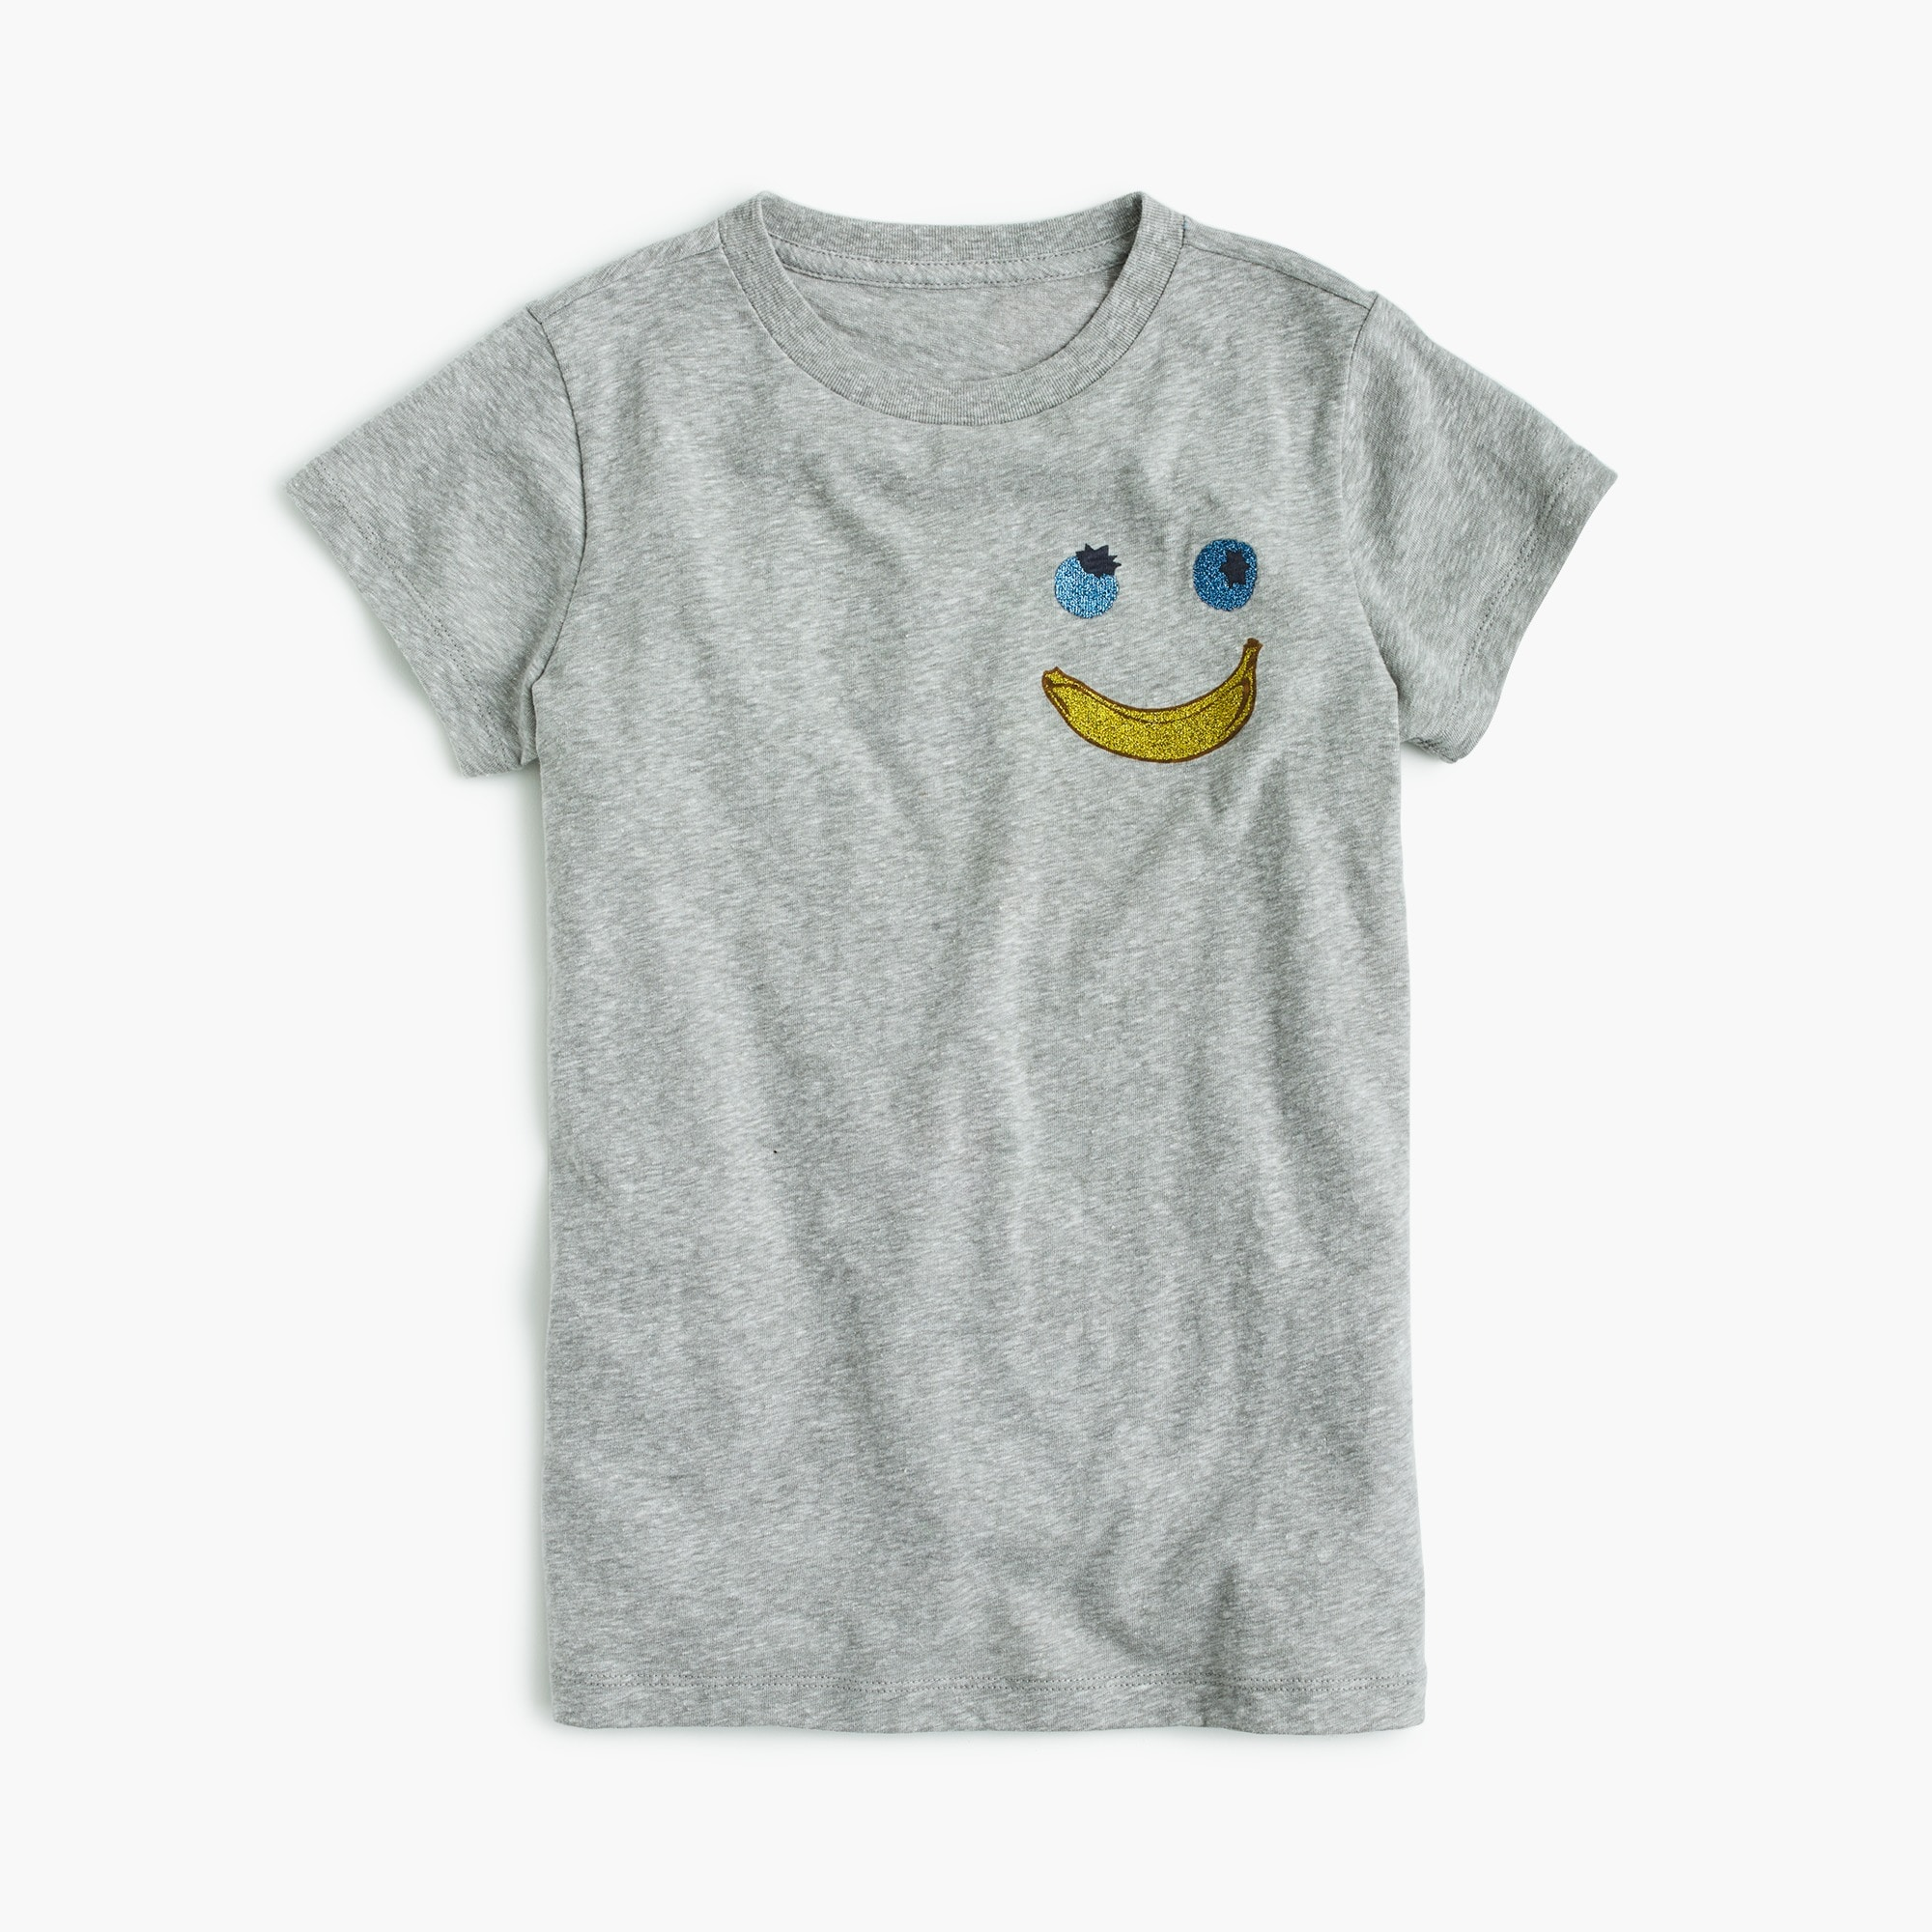 Girls' banana face T-shirt girl new arrivals c